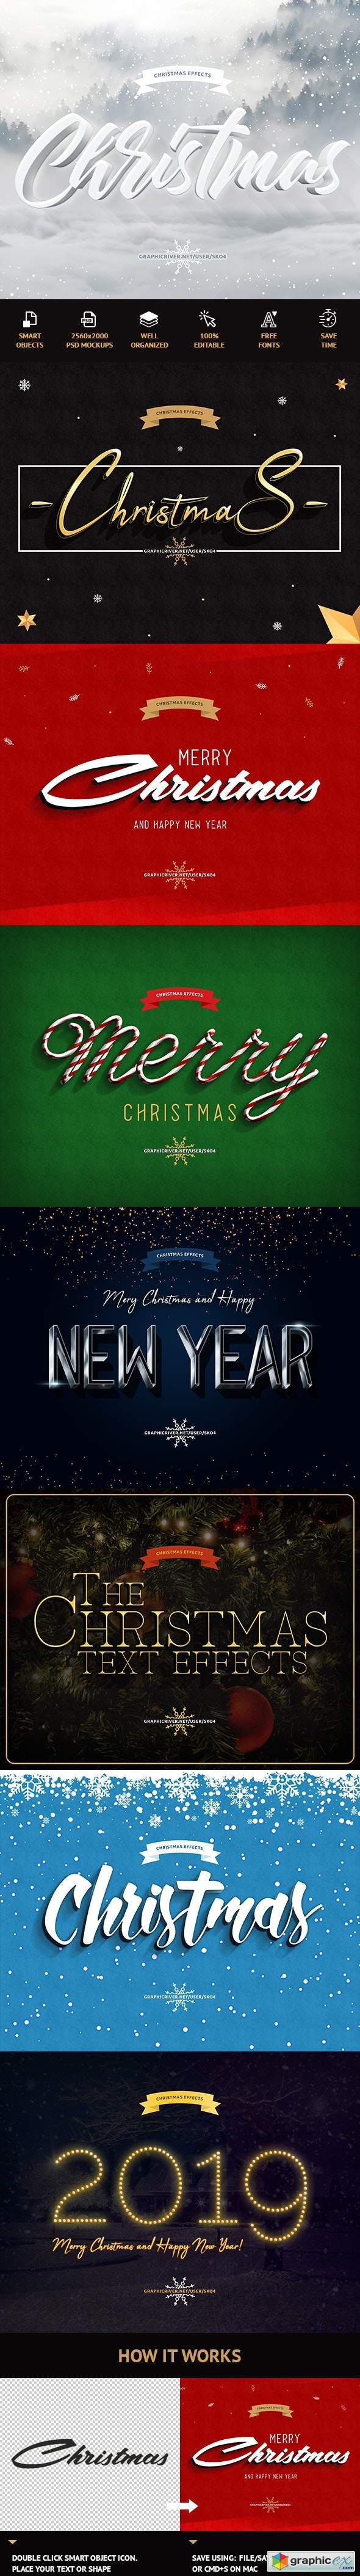 Christmas Text Effects 22915802